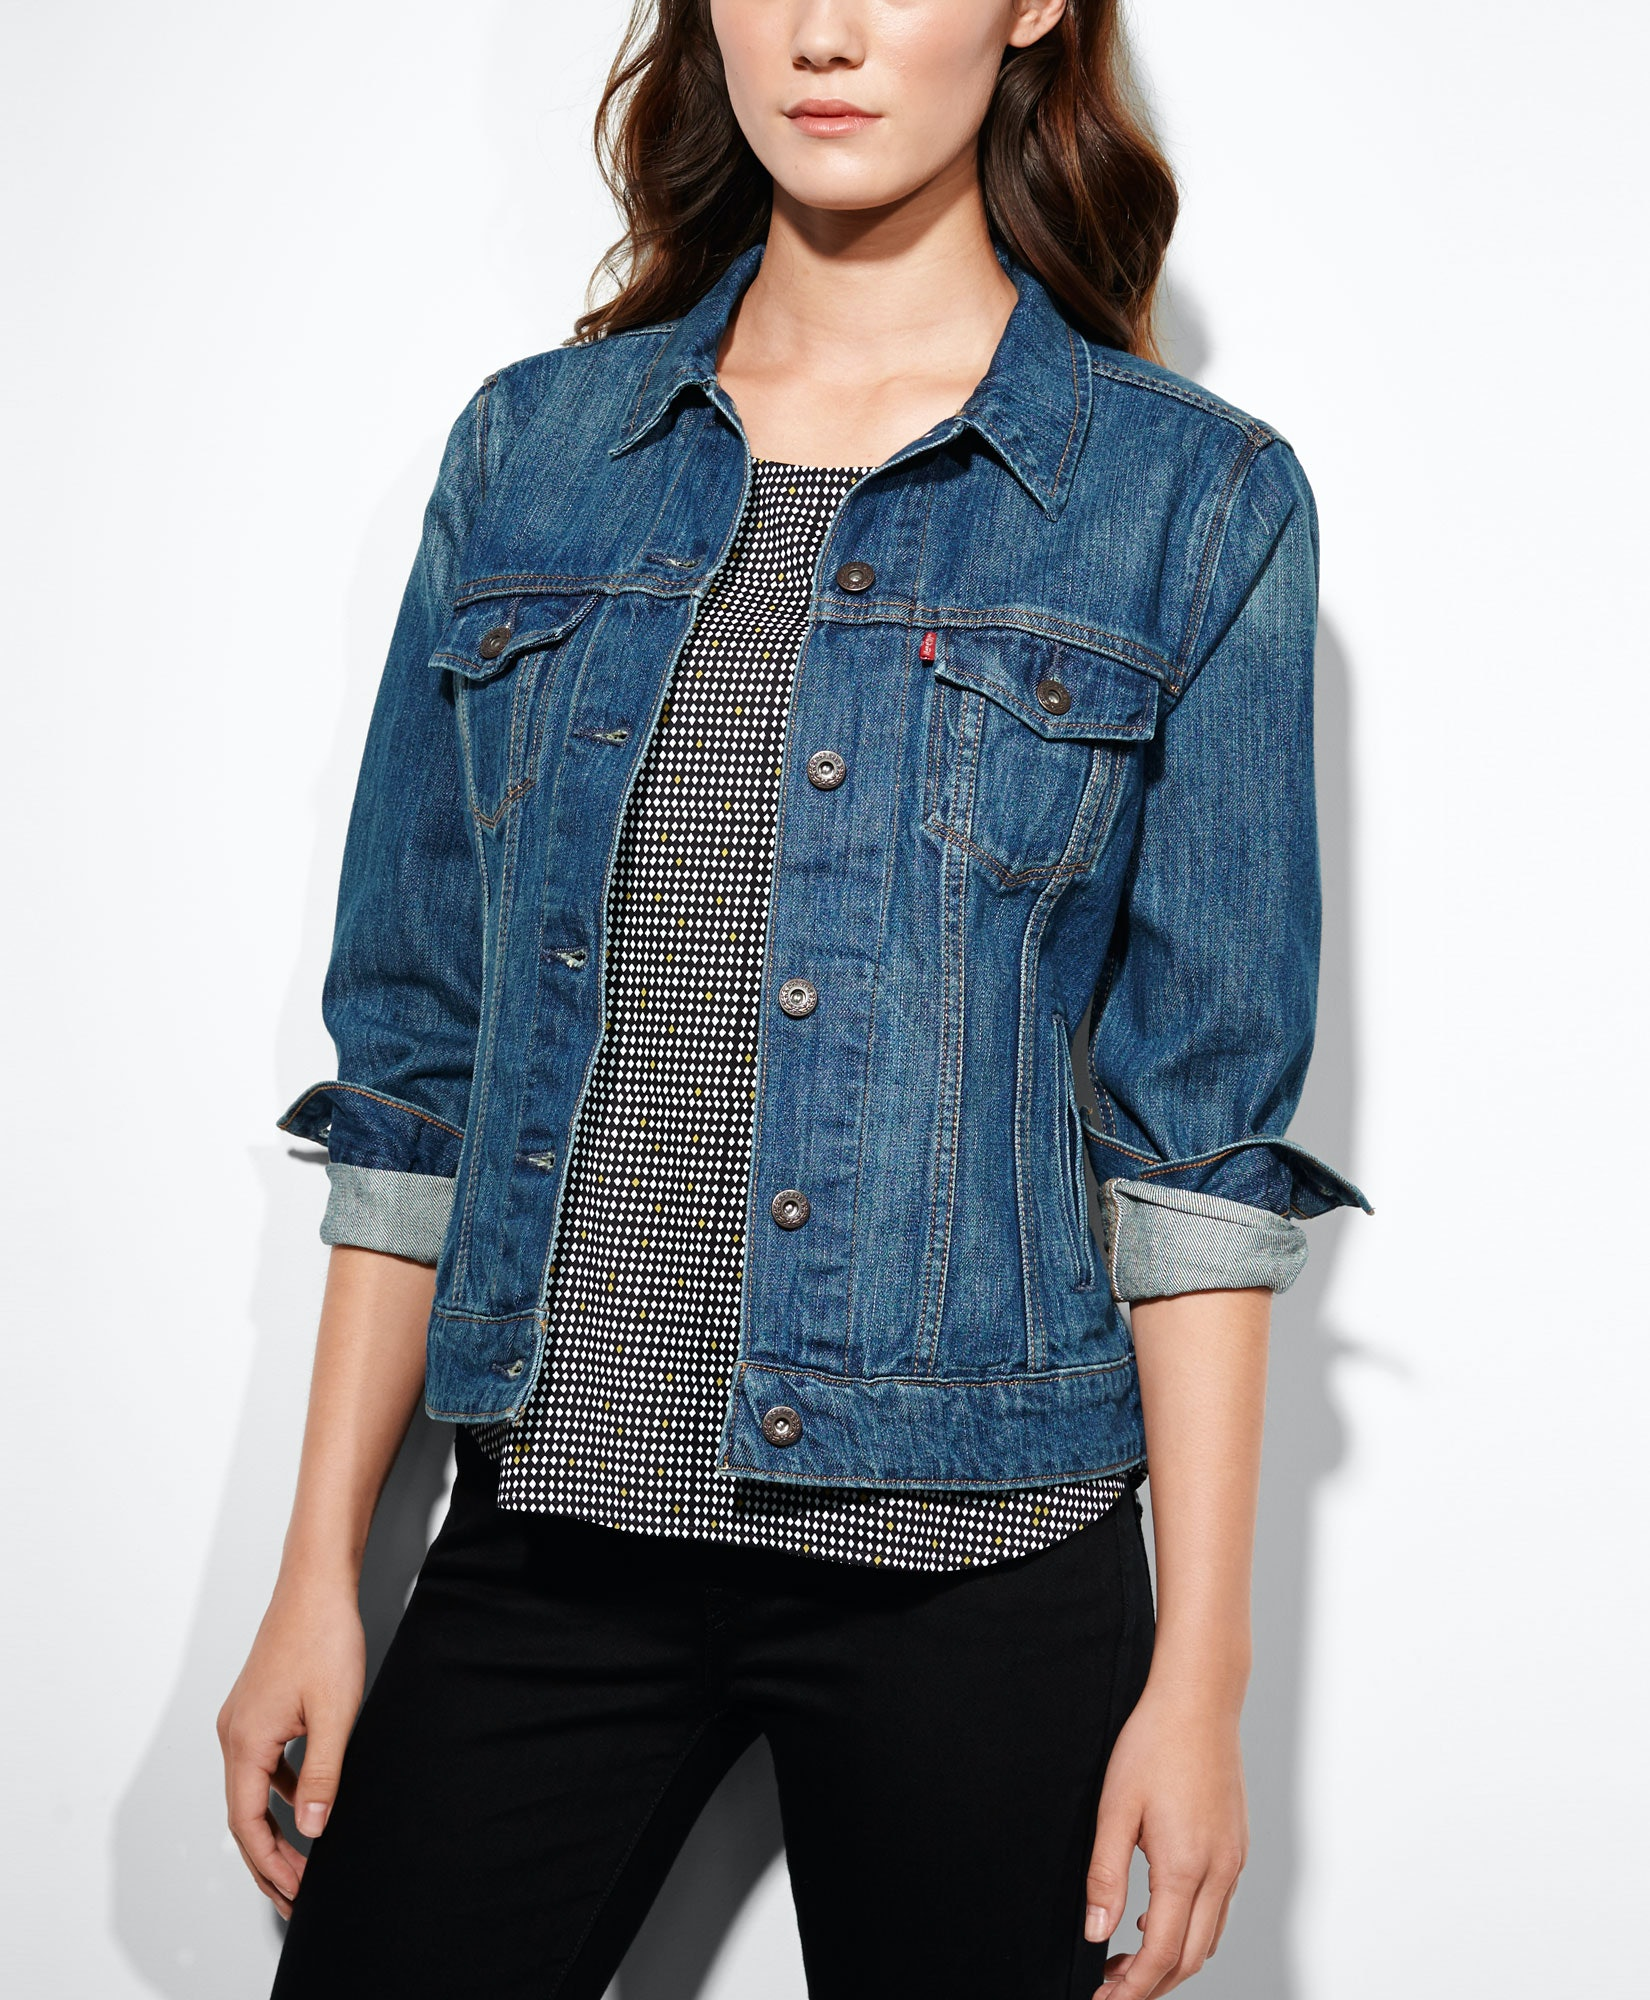 Whatever Happened to the Denim Jacket? The Brief History of The ...